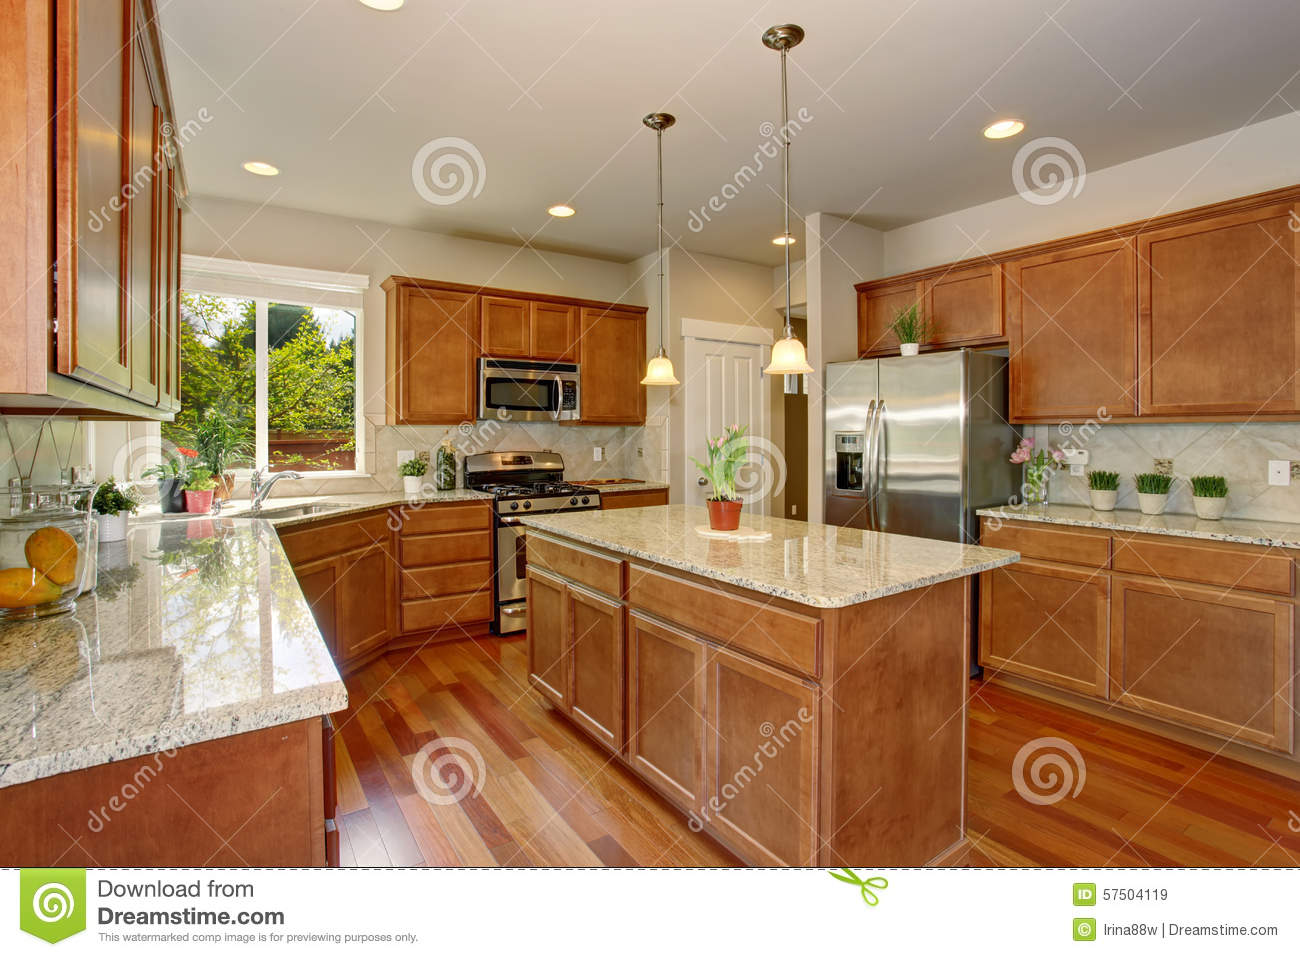 Modern kitchen with simple wood cabinets stock photo for Simple modern kitchen cabinets